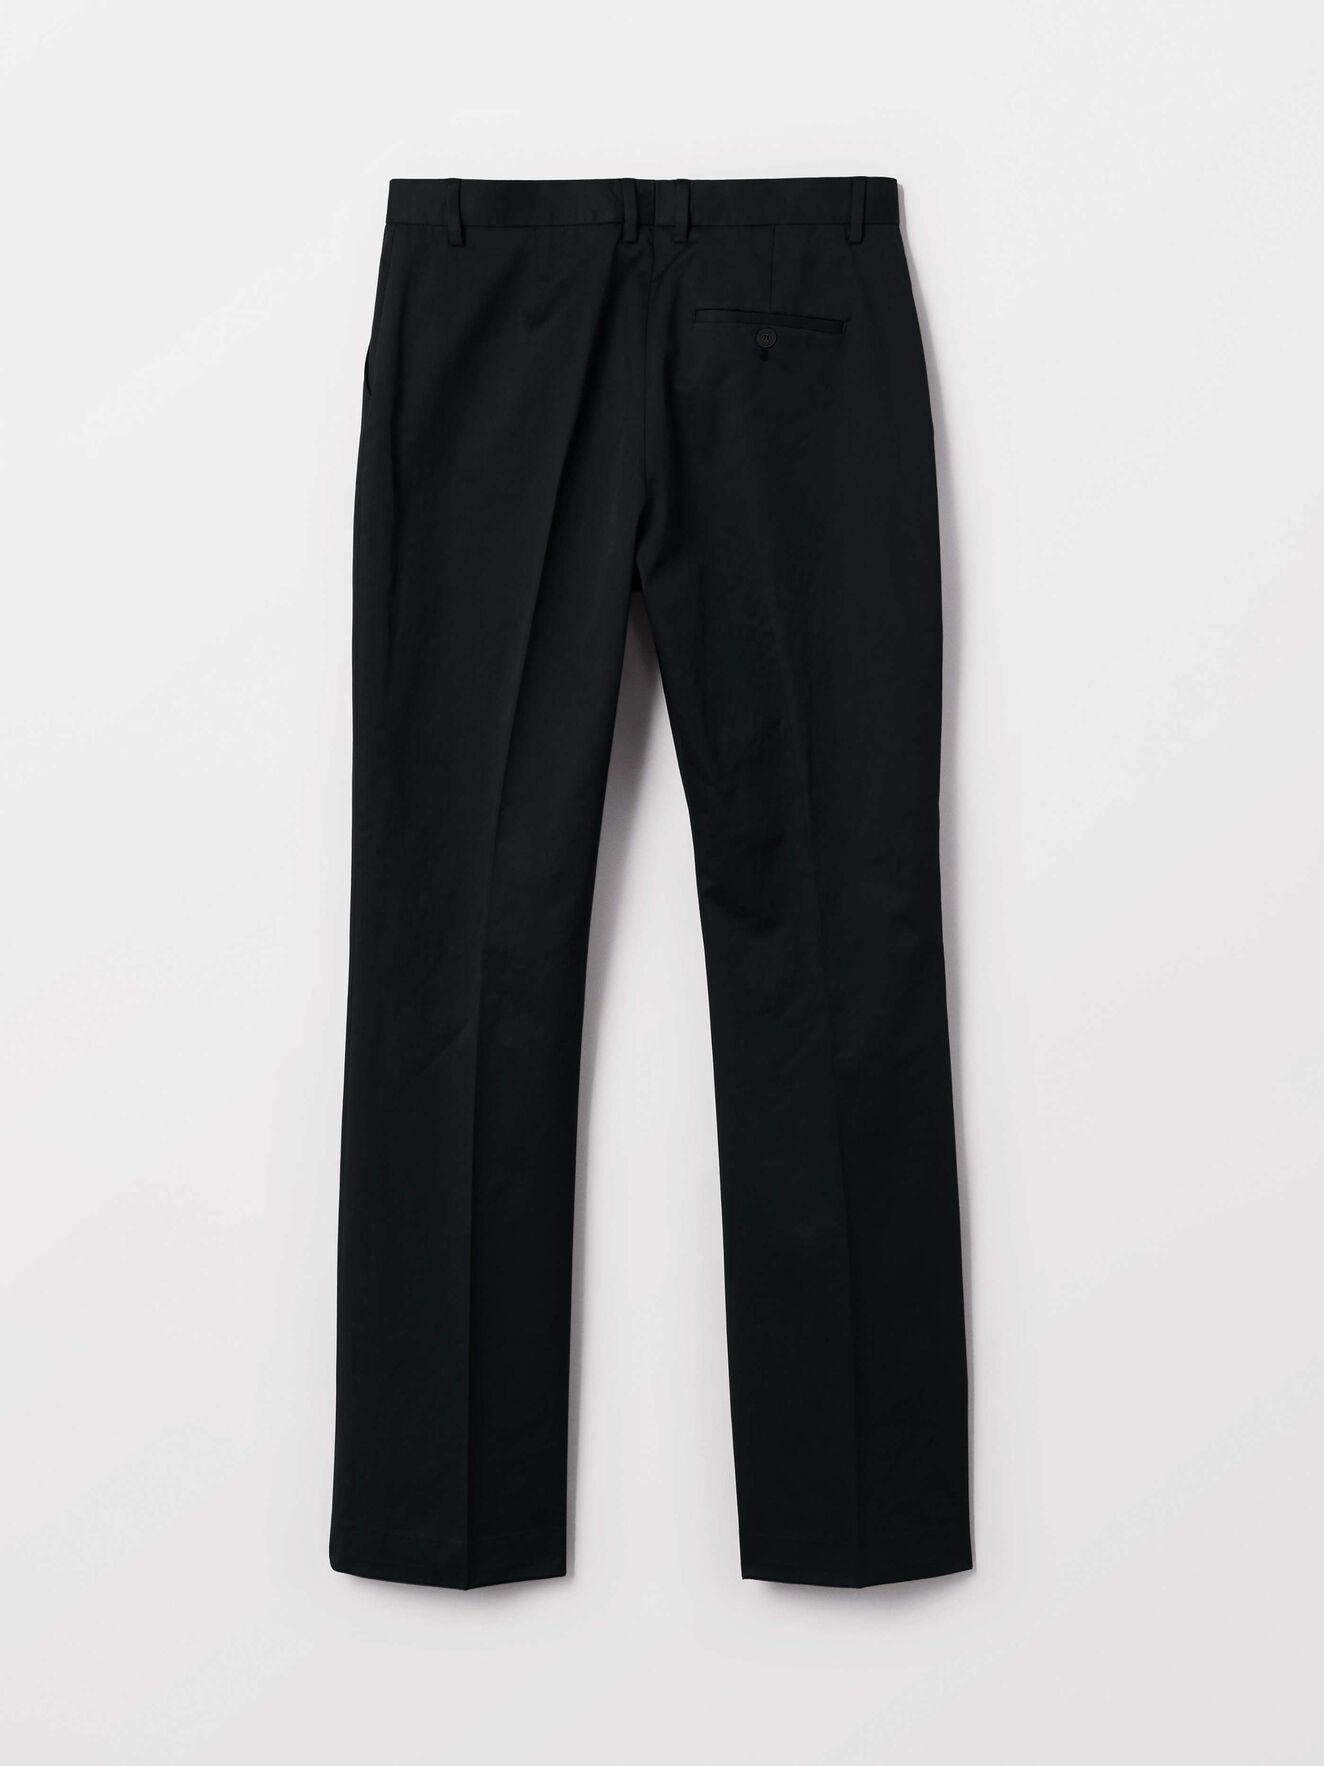 Hollen Trousers in Black from Tiger of Sweden